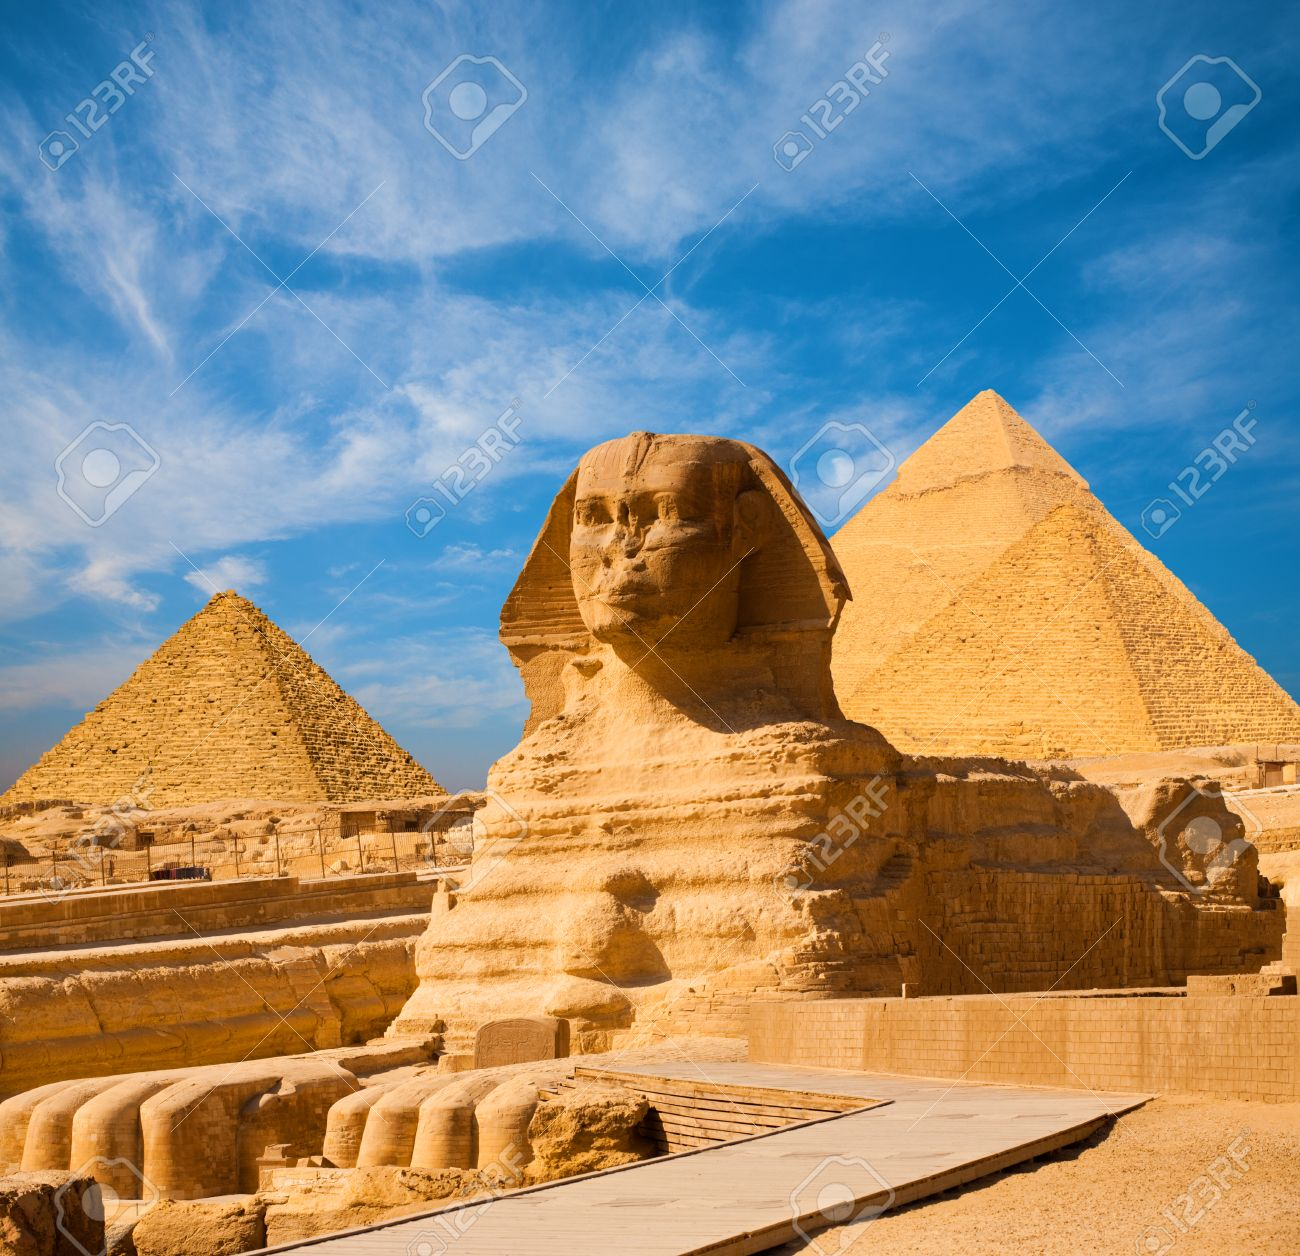 Egyptian Great Sphinx full body portrait with head, feet with all pyramids of Menkaure, Khafre, Khufu in background on a clear, blue sky day in Giza, Egypt empty with nobody. copy space - 65834164